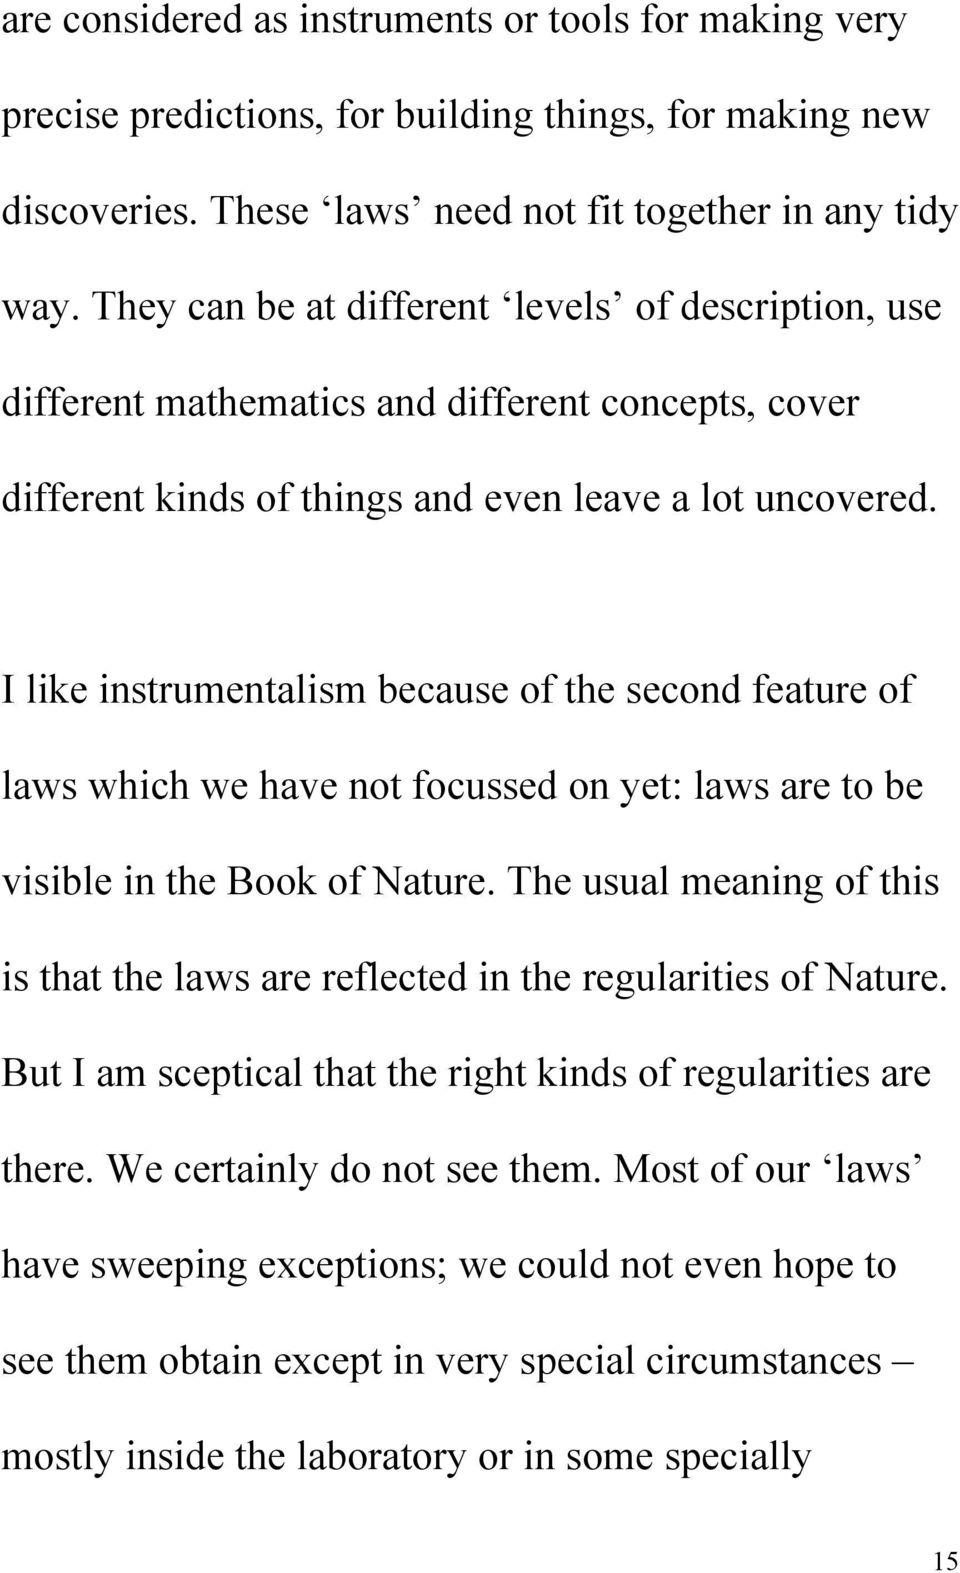 I like instrumentalism because of the second feature of laws which we have not focussed on yet: laws are to be visible in the Book of Nature.